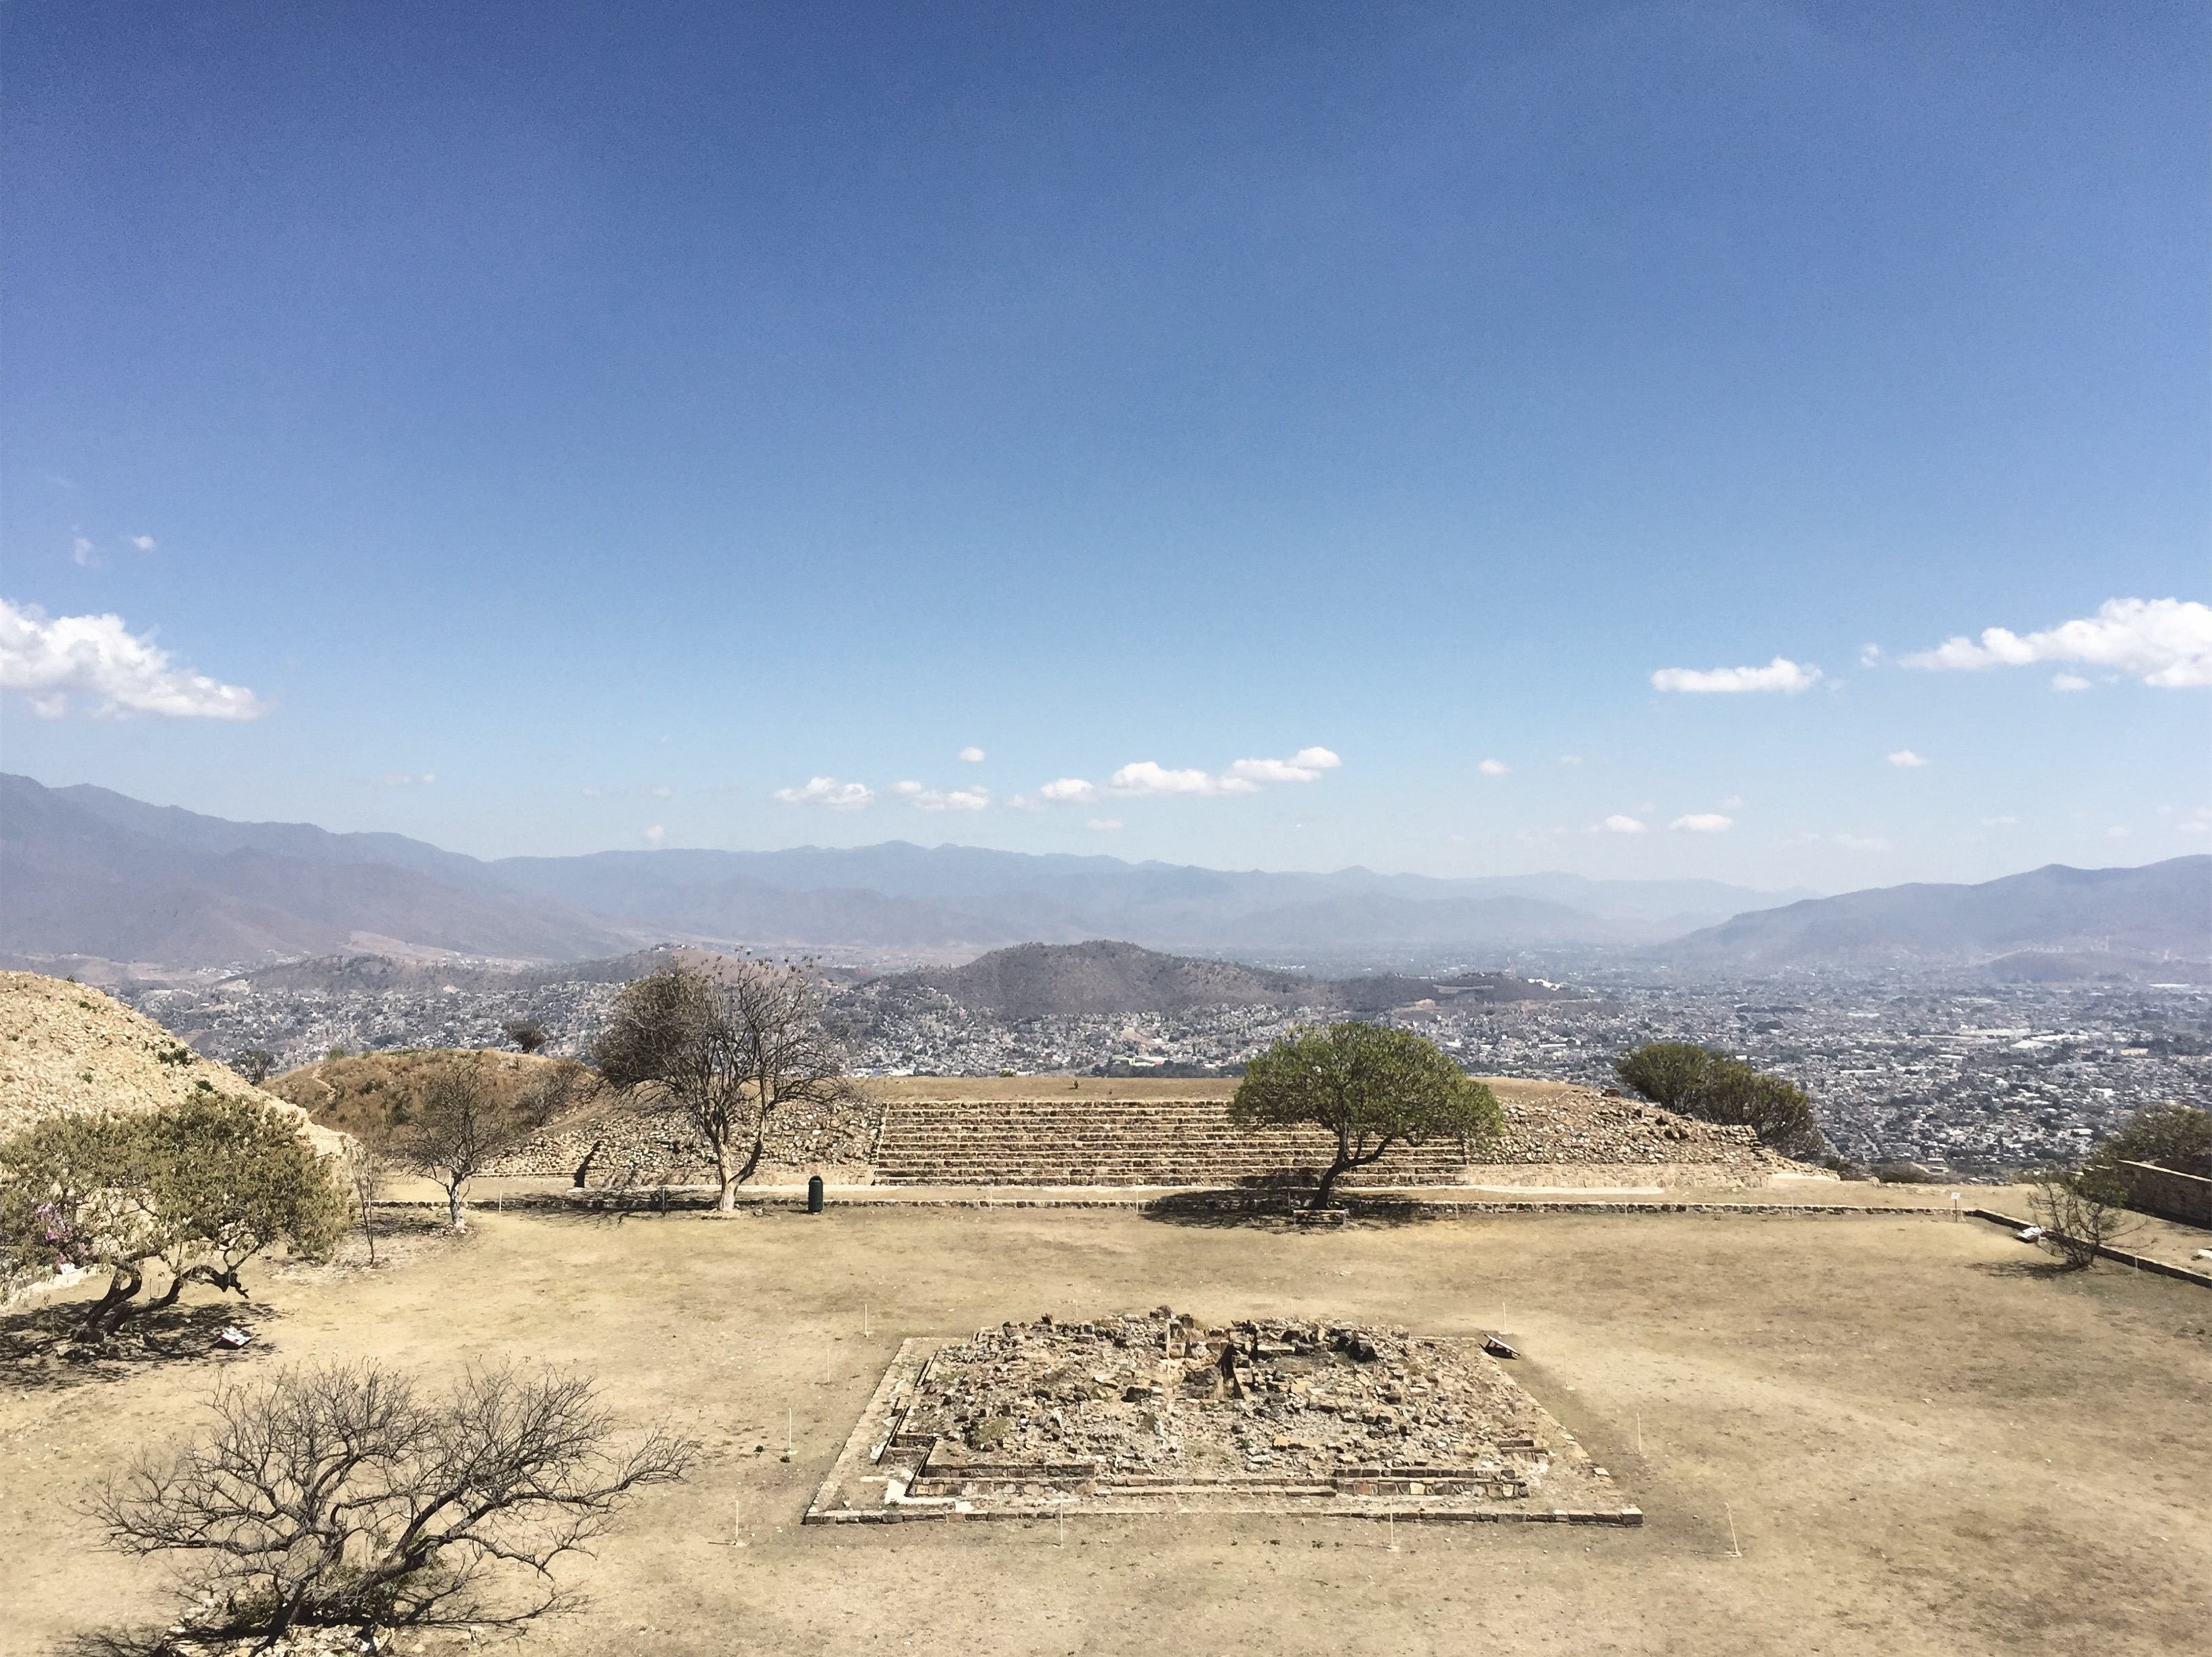 The view of Atzompa's highest square from the main pyramid and with the city of Oaxaca and its mountainous landscape in the background.